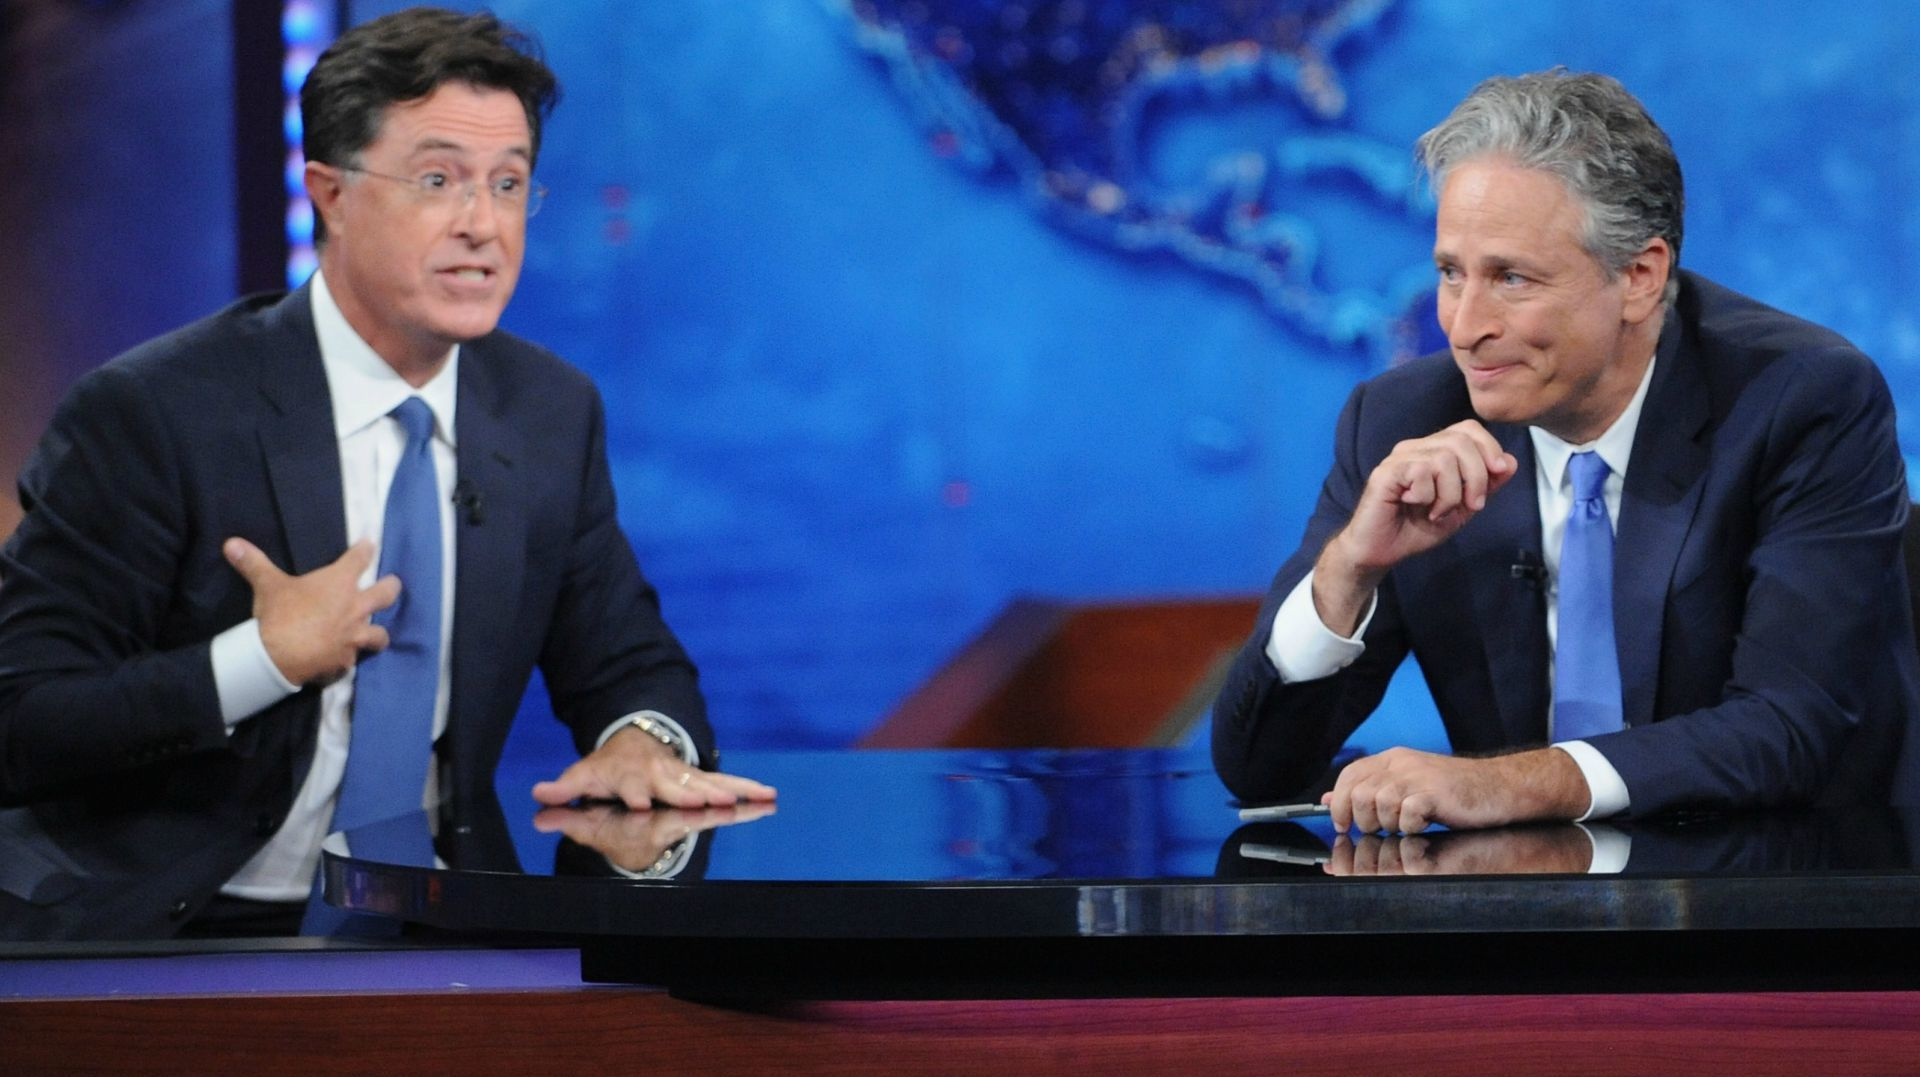 Jon Stewart and Stephen Colbert at the last episode of The Daily Show with Jon Stewart